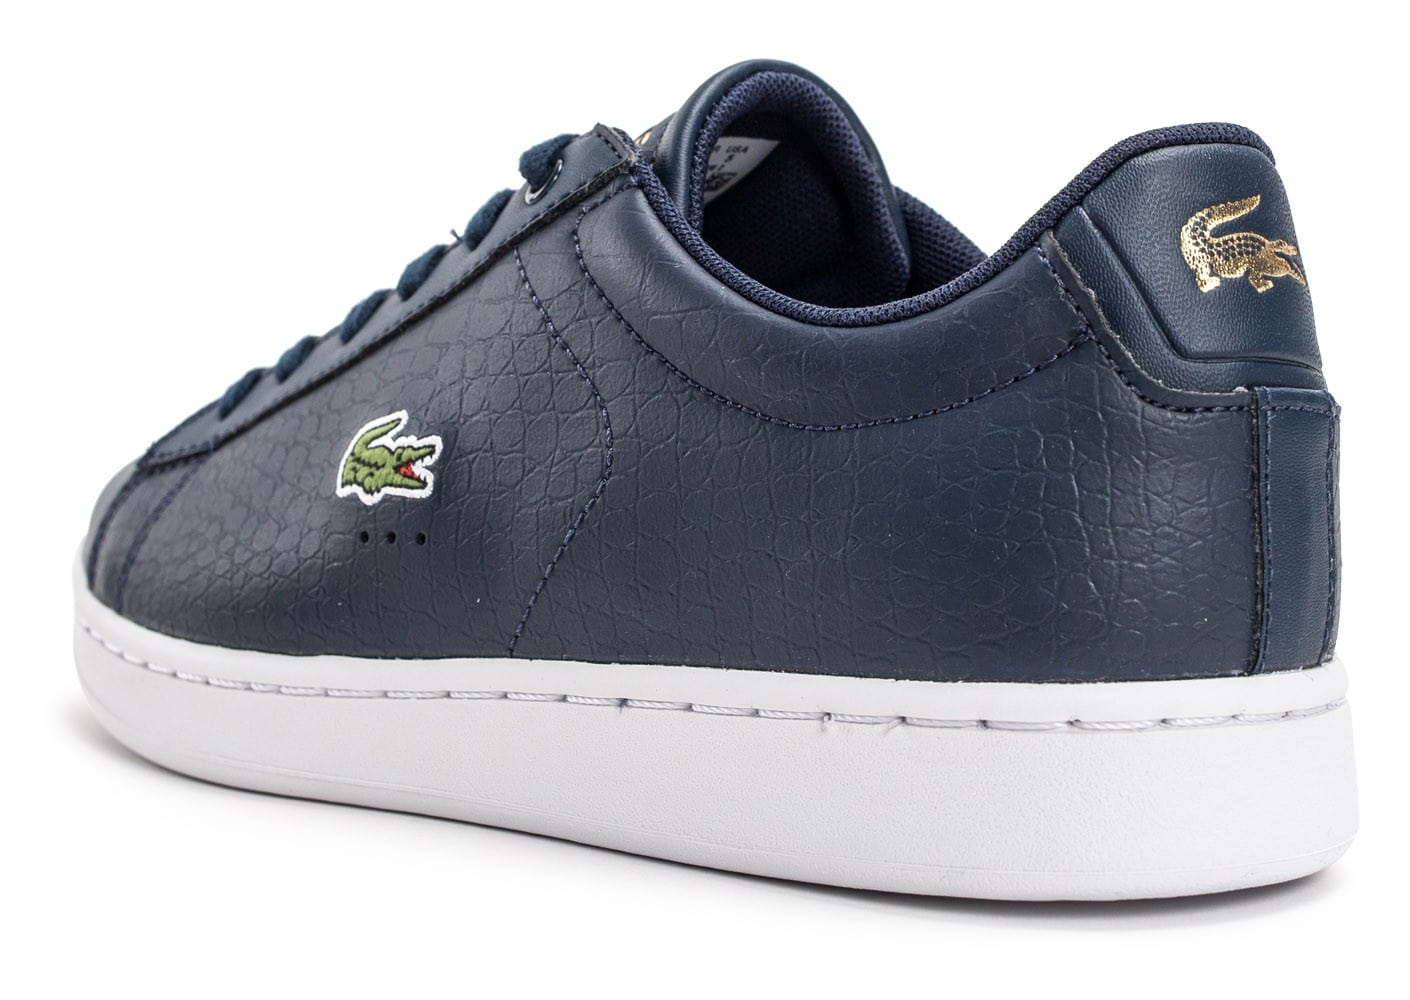 Lacoste Carnaby Bleu marine - Chaussures Baskets basses Femme